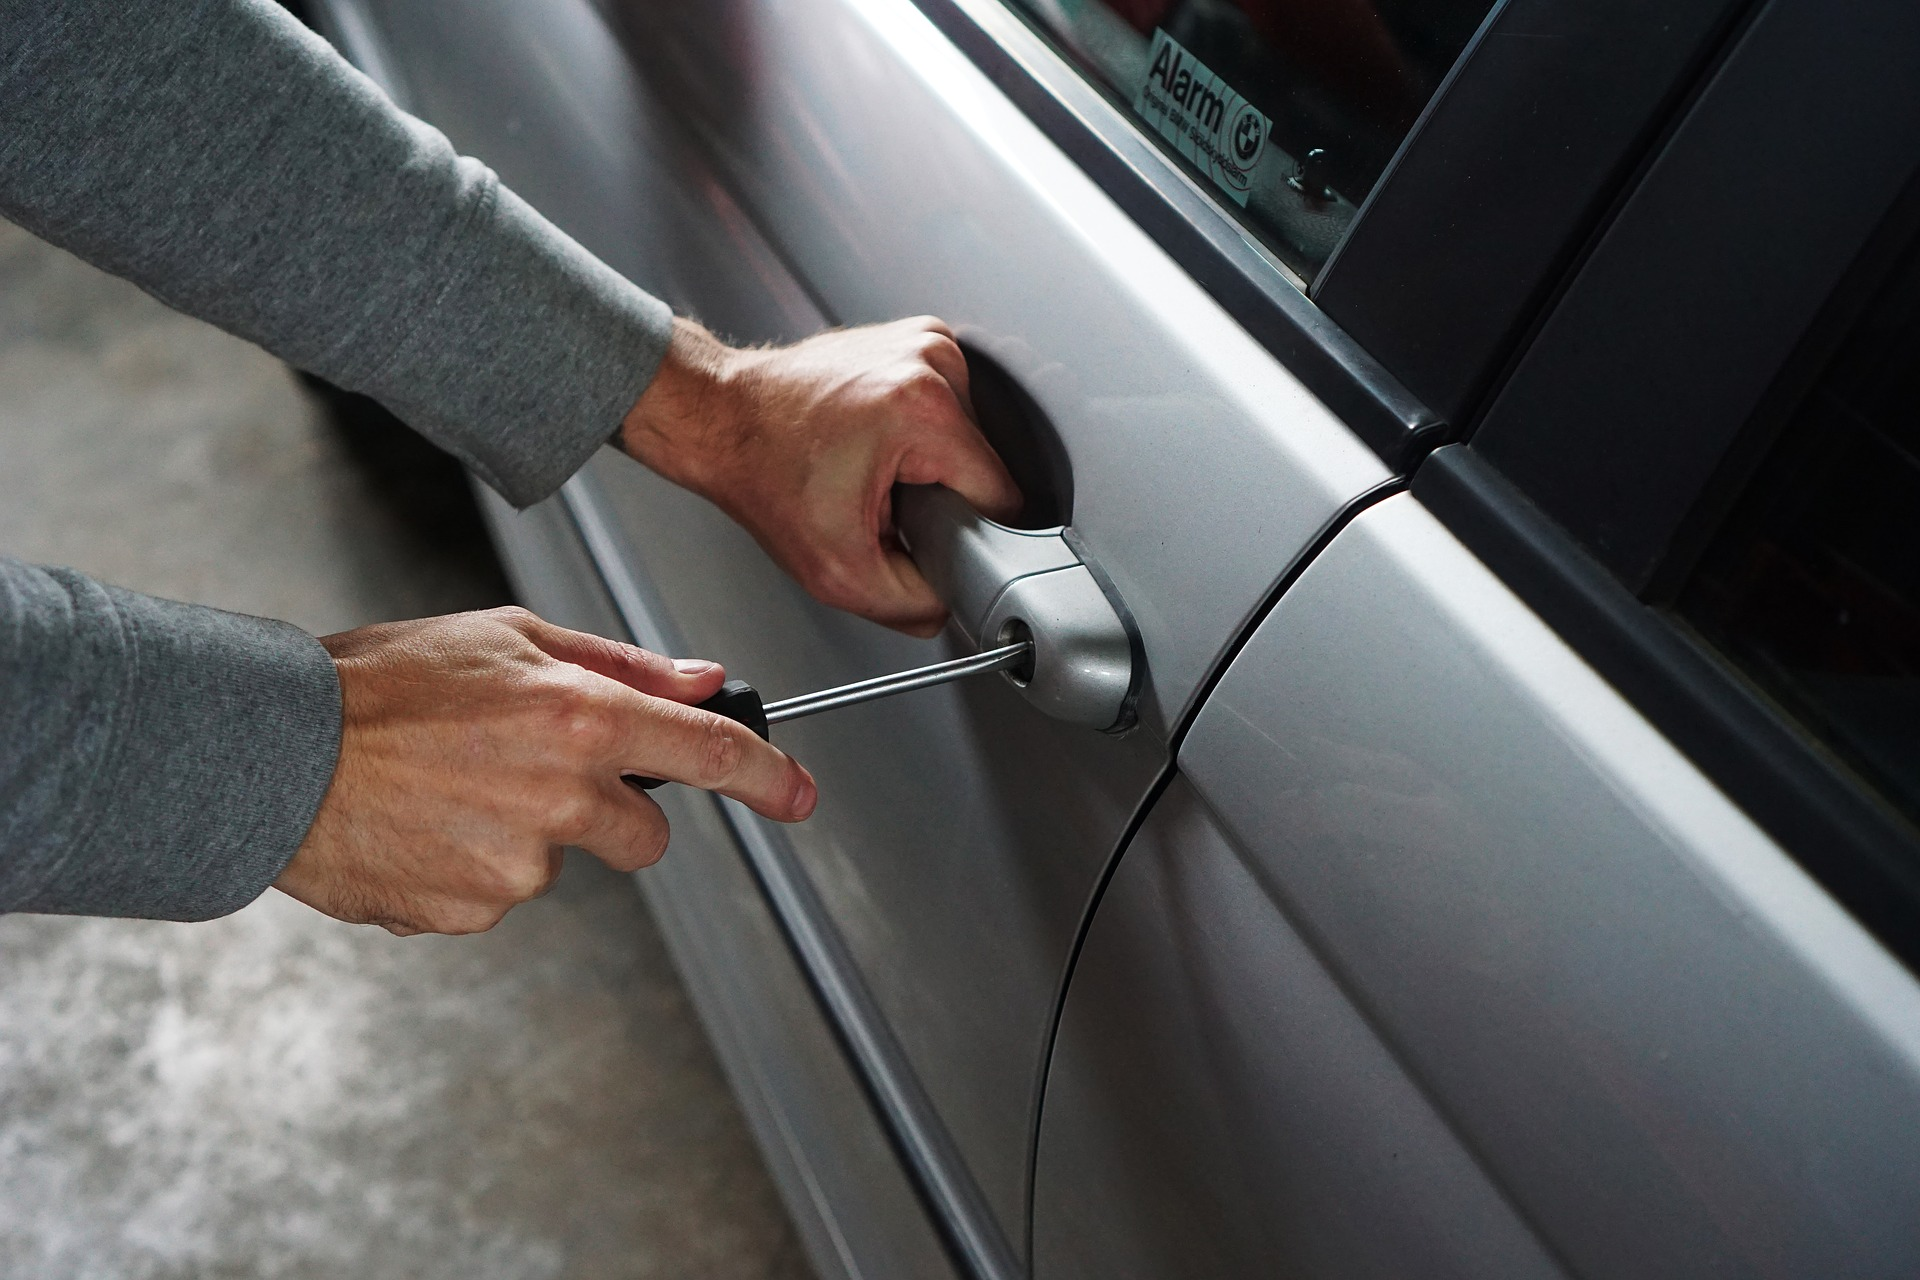 Car Security Statistics that Convince you to Get a Parking Space